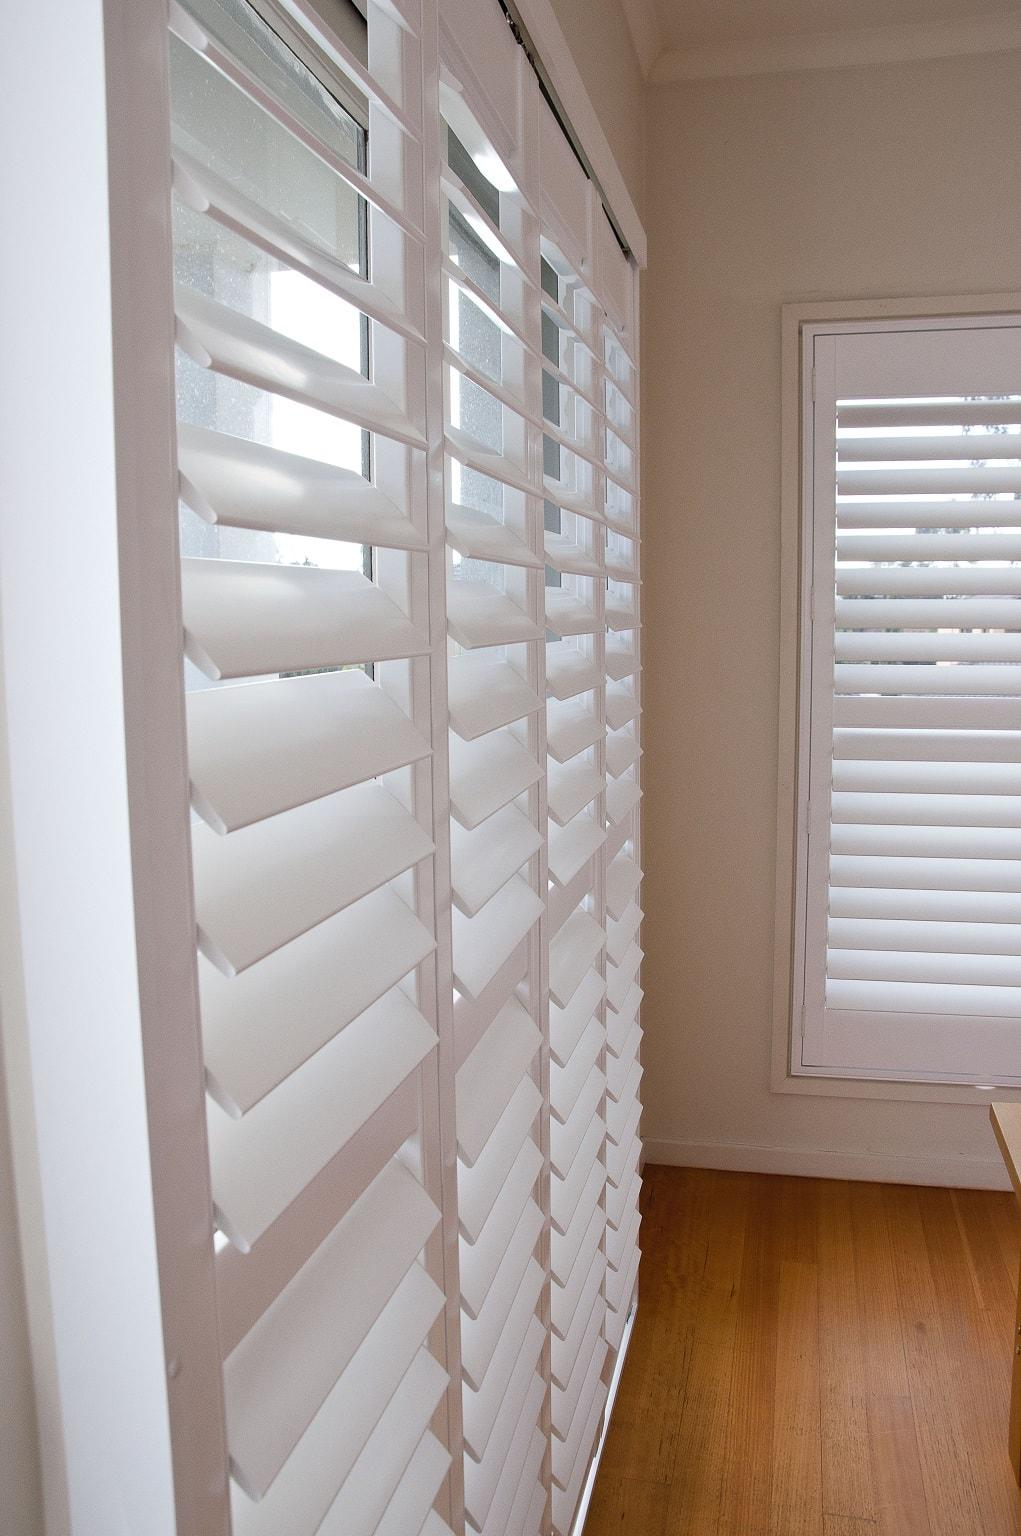 Various Custom Sized Window and Door Plantation Shutters Installed in Master Bedroom 2